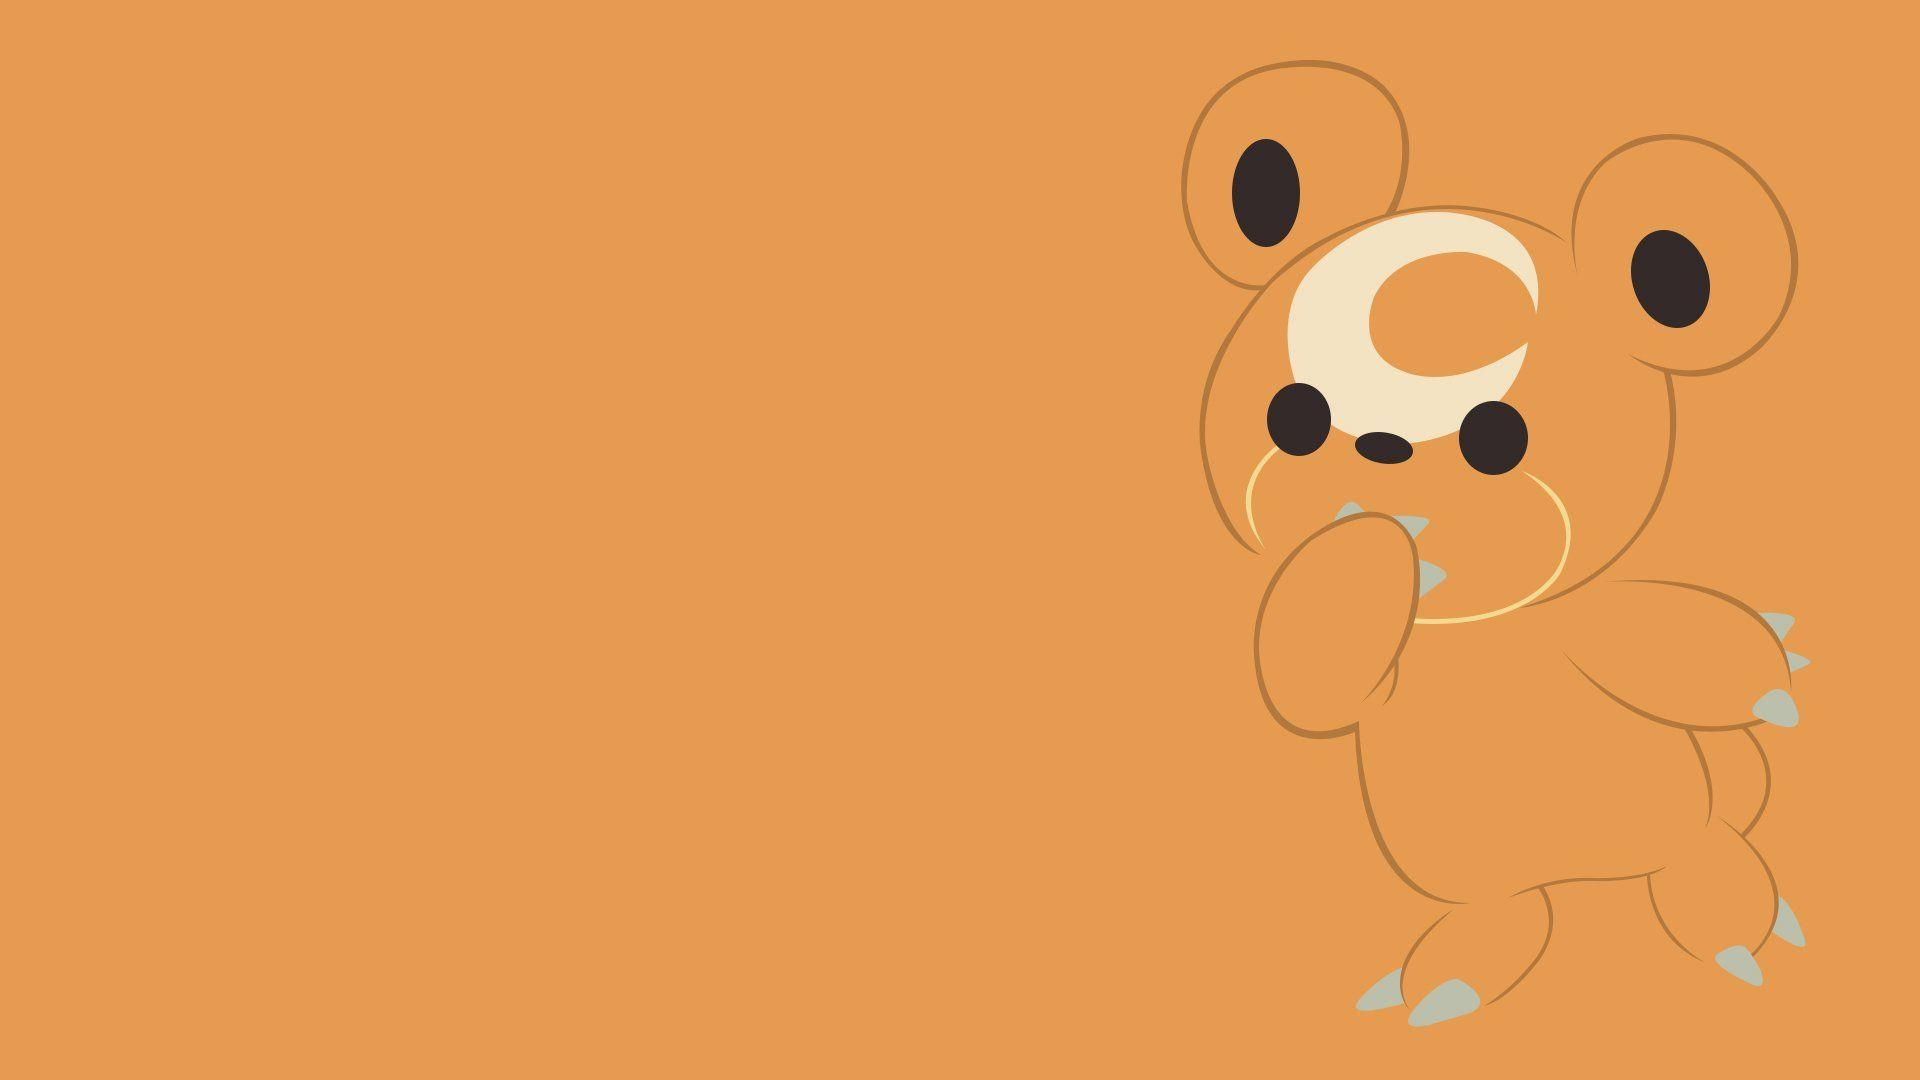 Teddiursa Full HD Wallpaper and Background Image | 1920x1080 | ID:561870